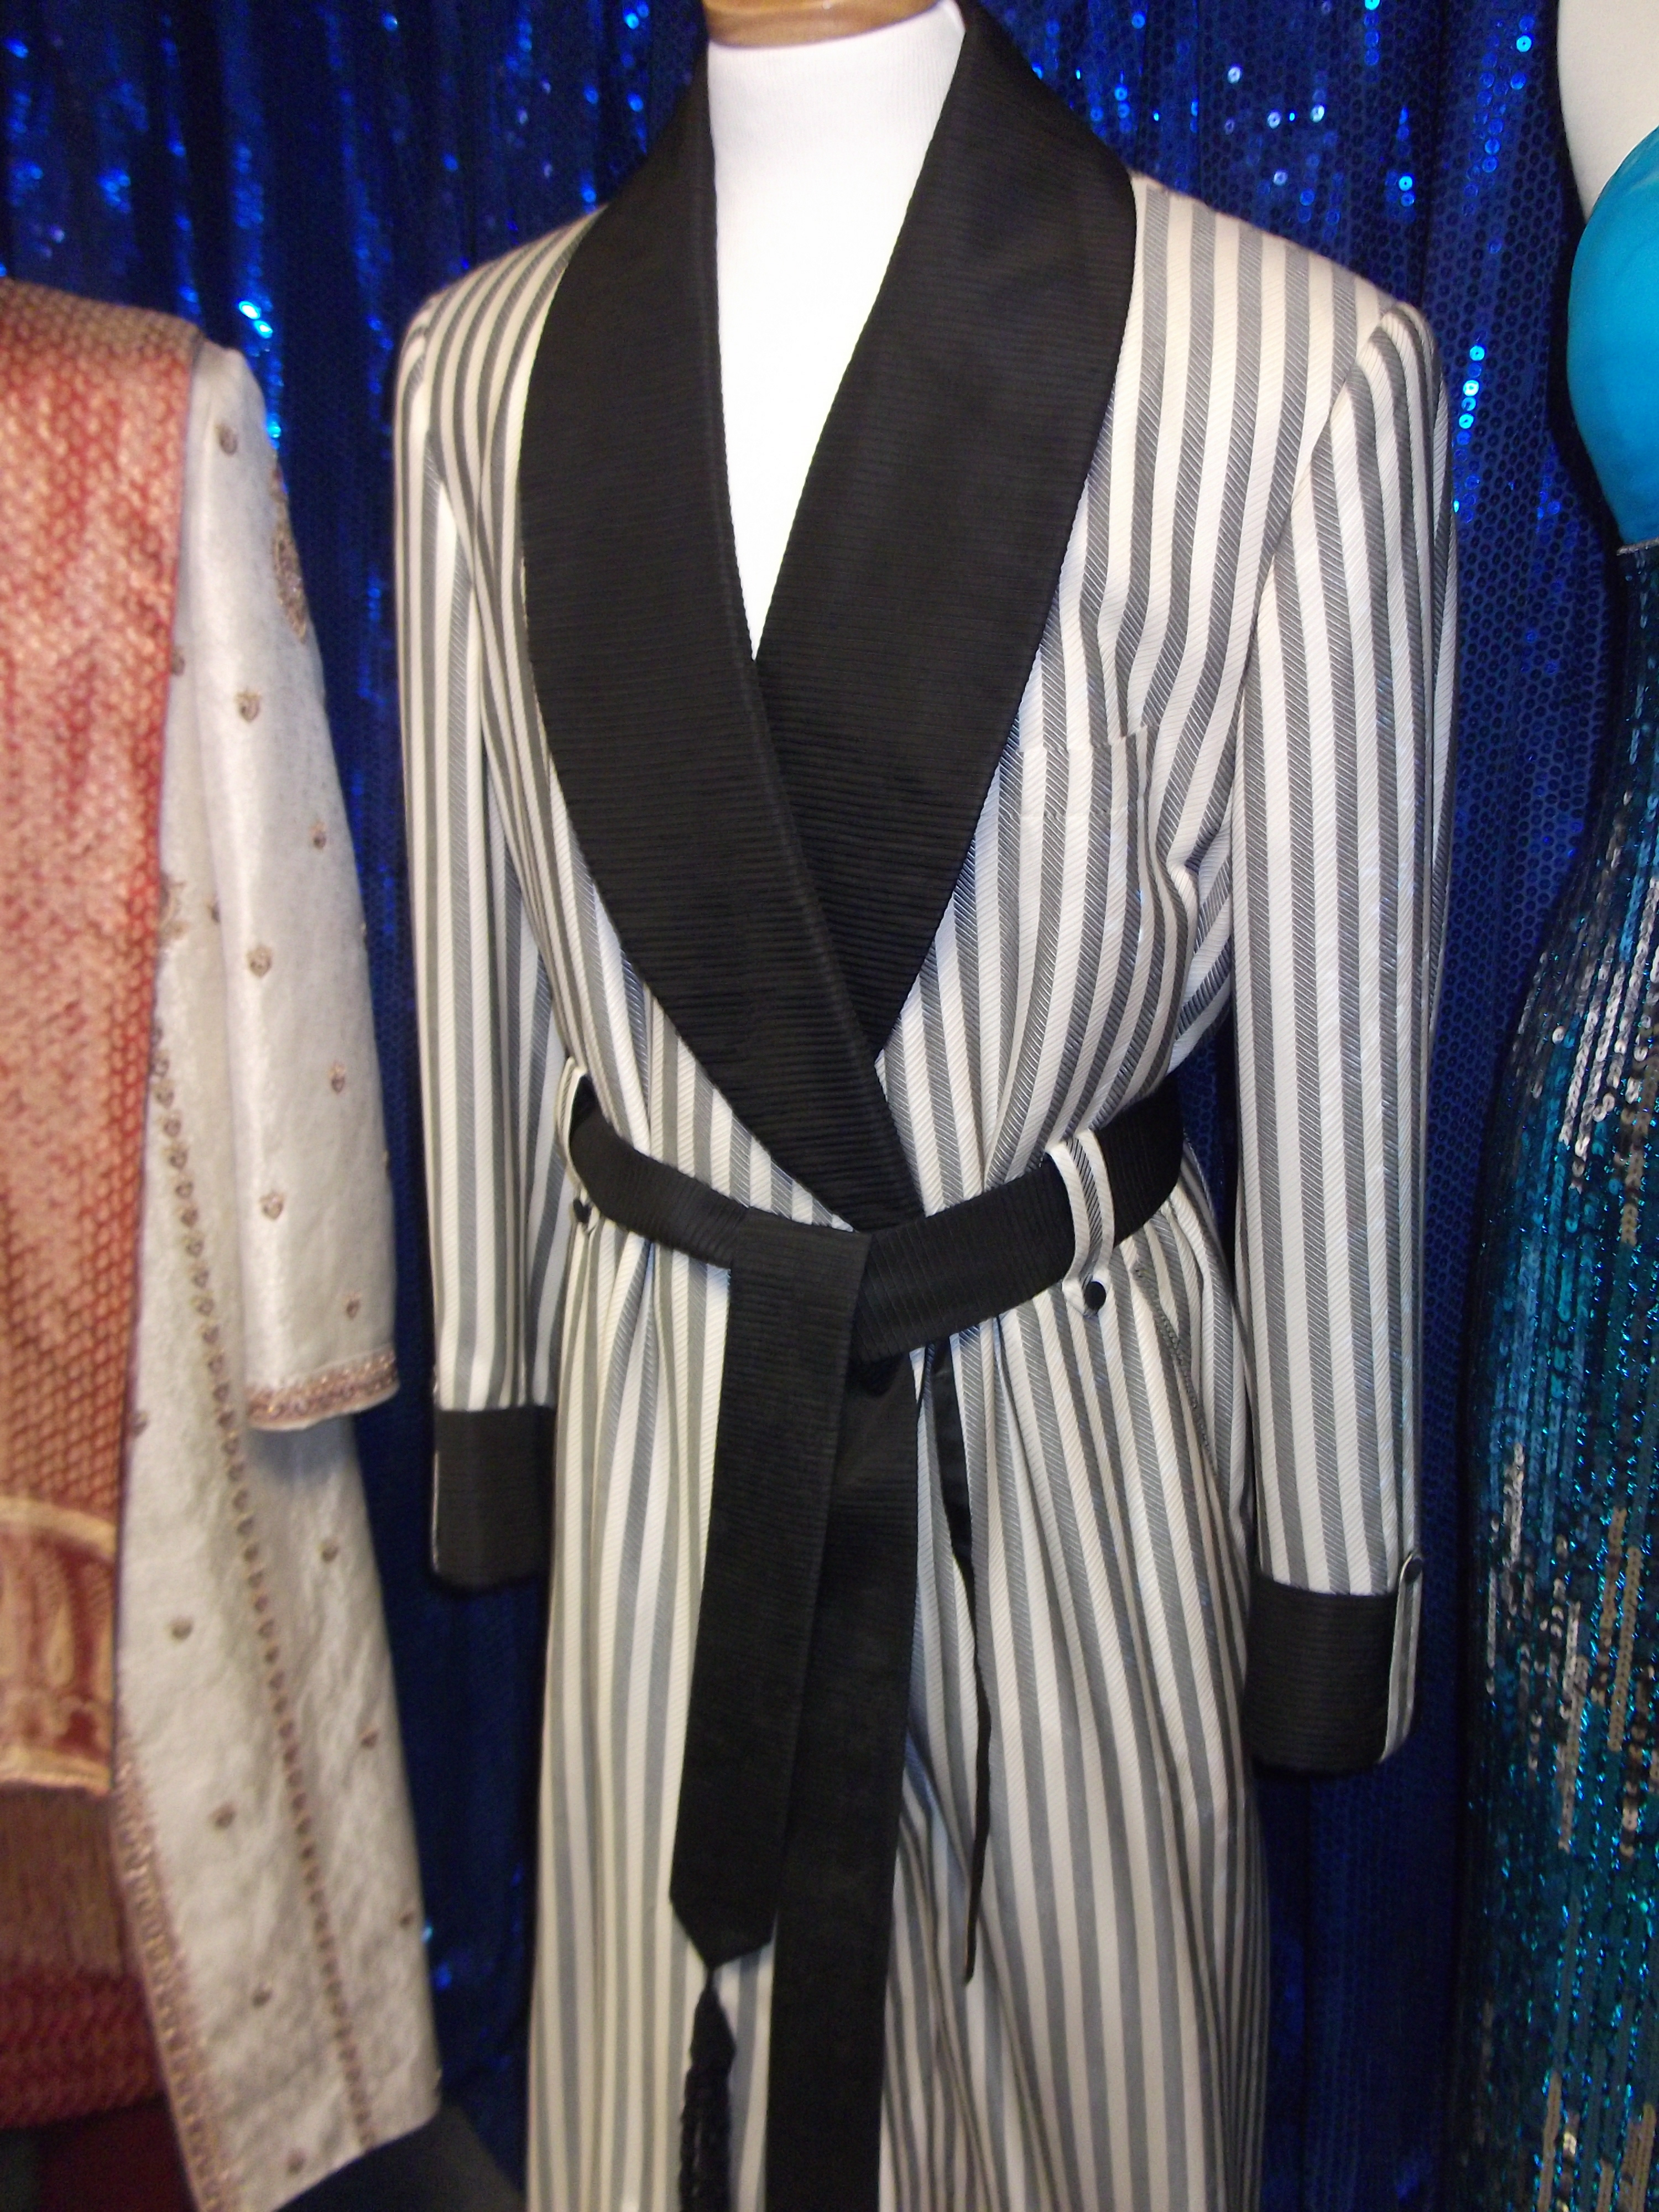 Harlem Nights Costumes http://bradleyjustine.com/2012/05/06/inside-the-gates-costume-archive/